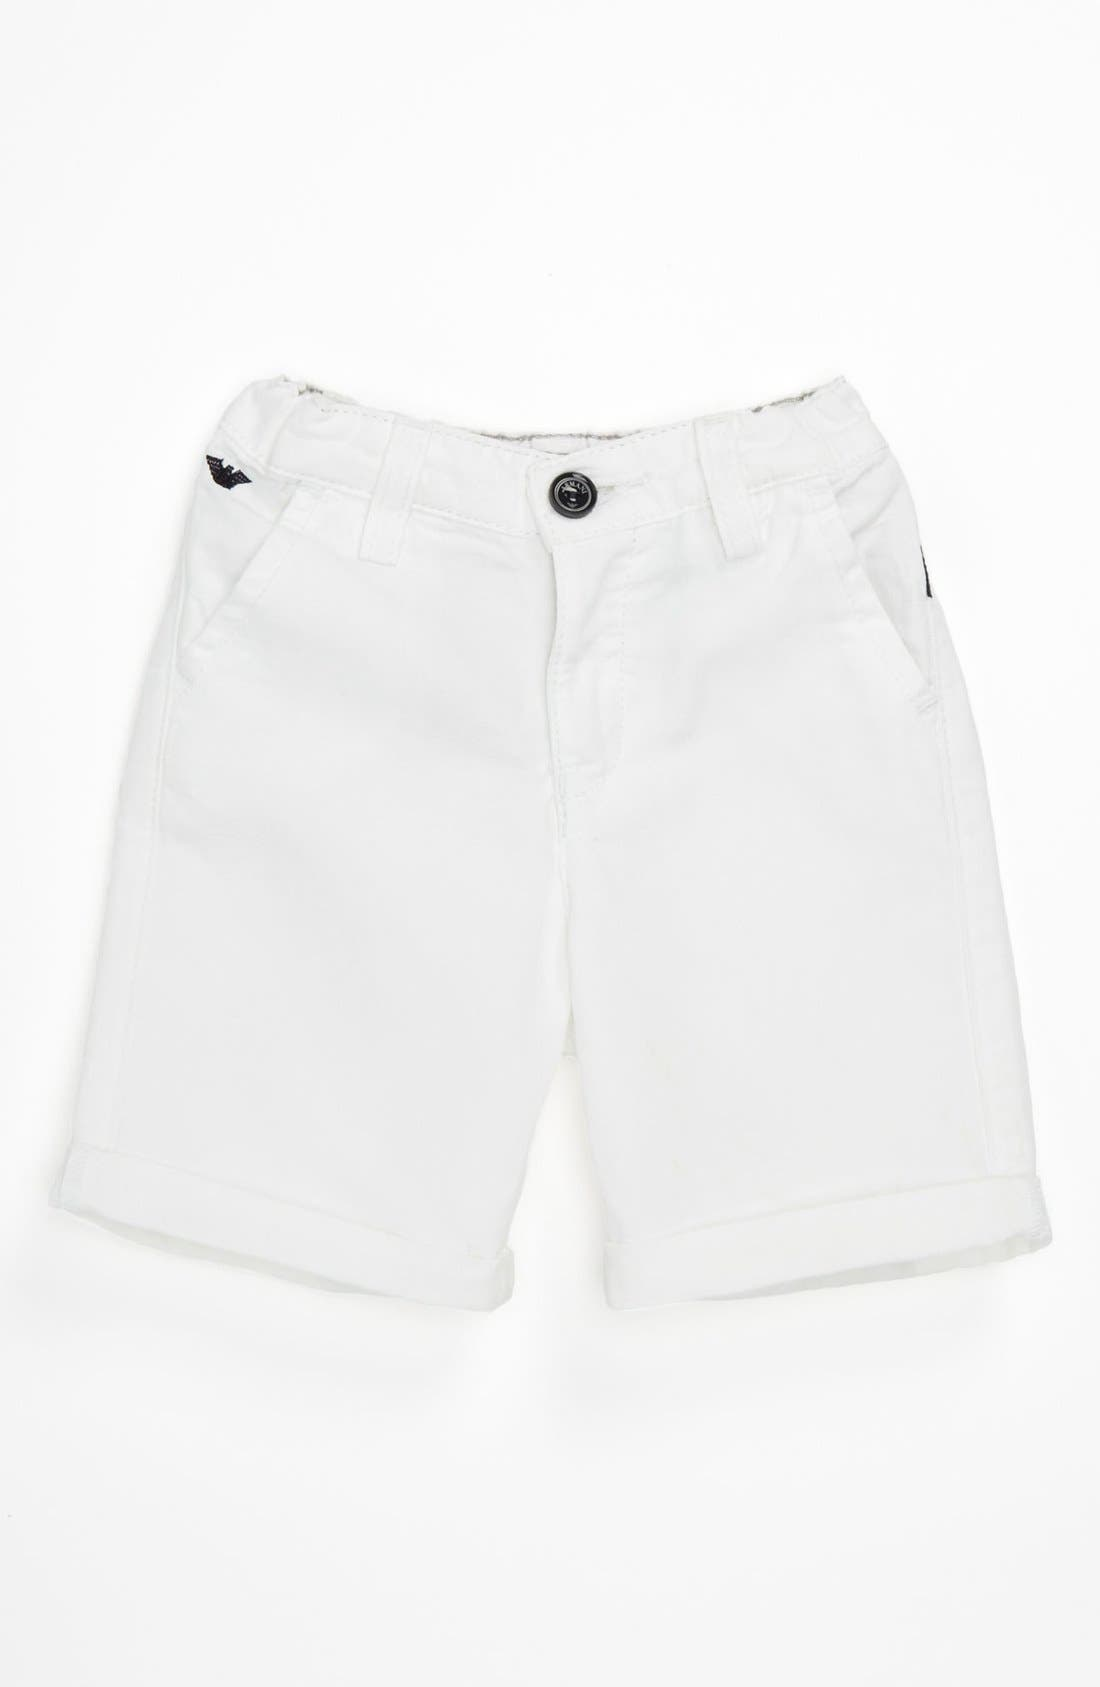 Alternate Image 1 Selected - Armani Junior Shorts (Baby)